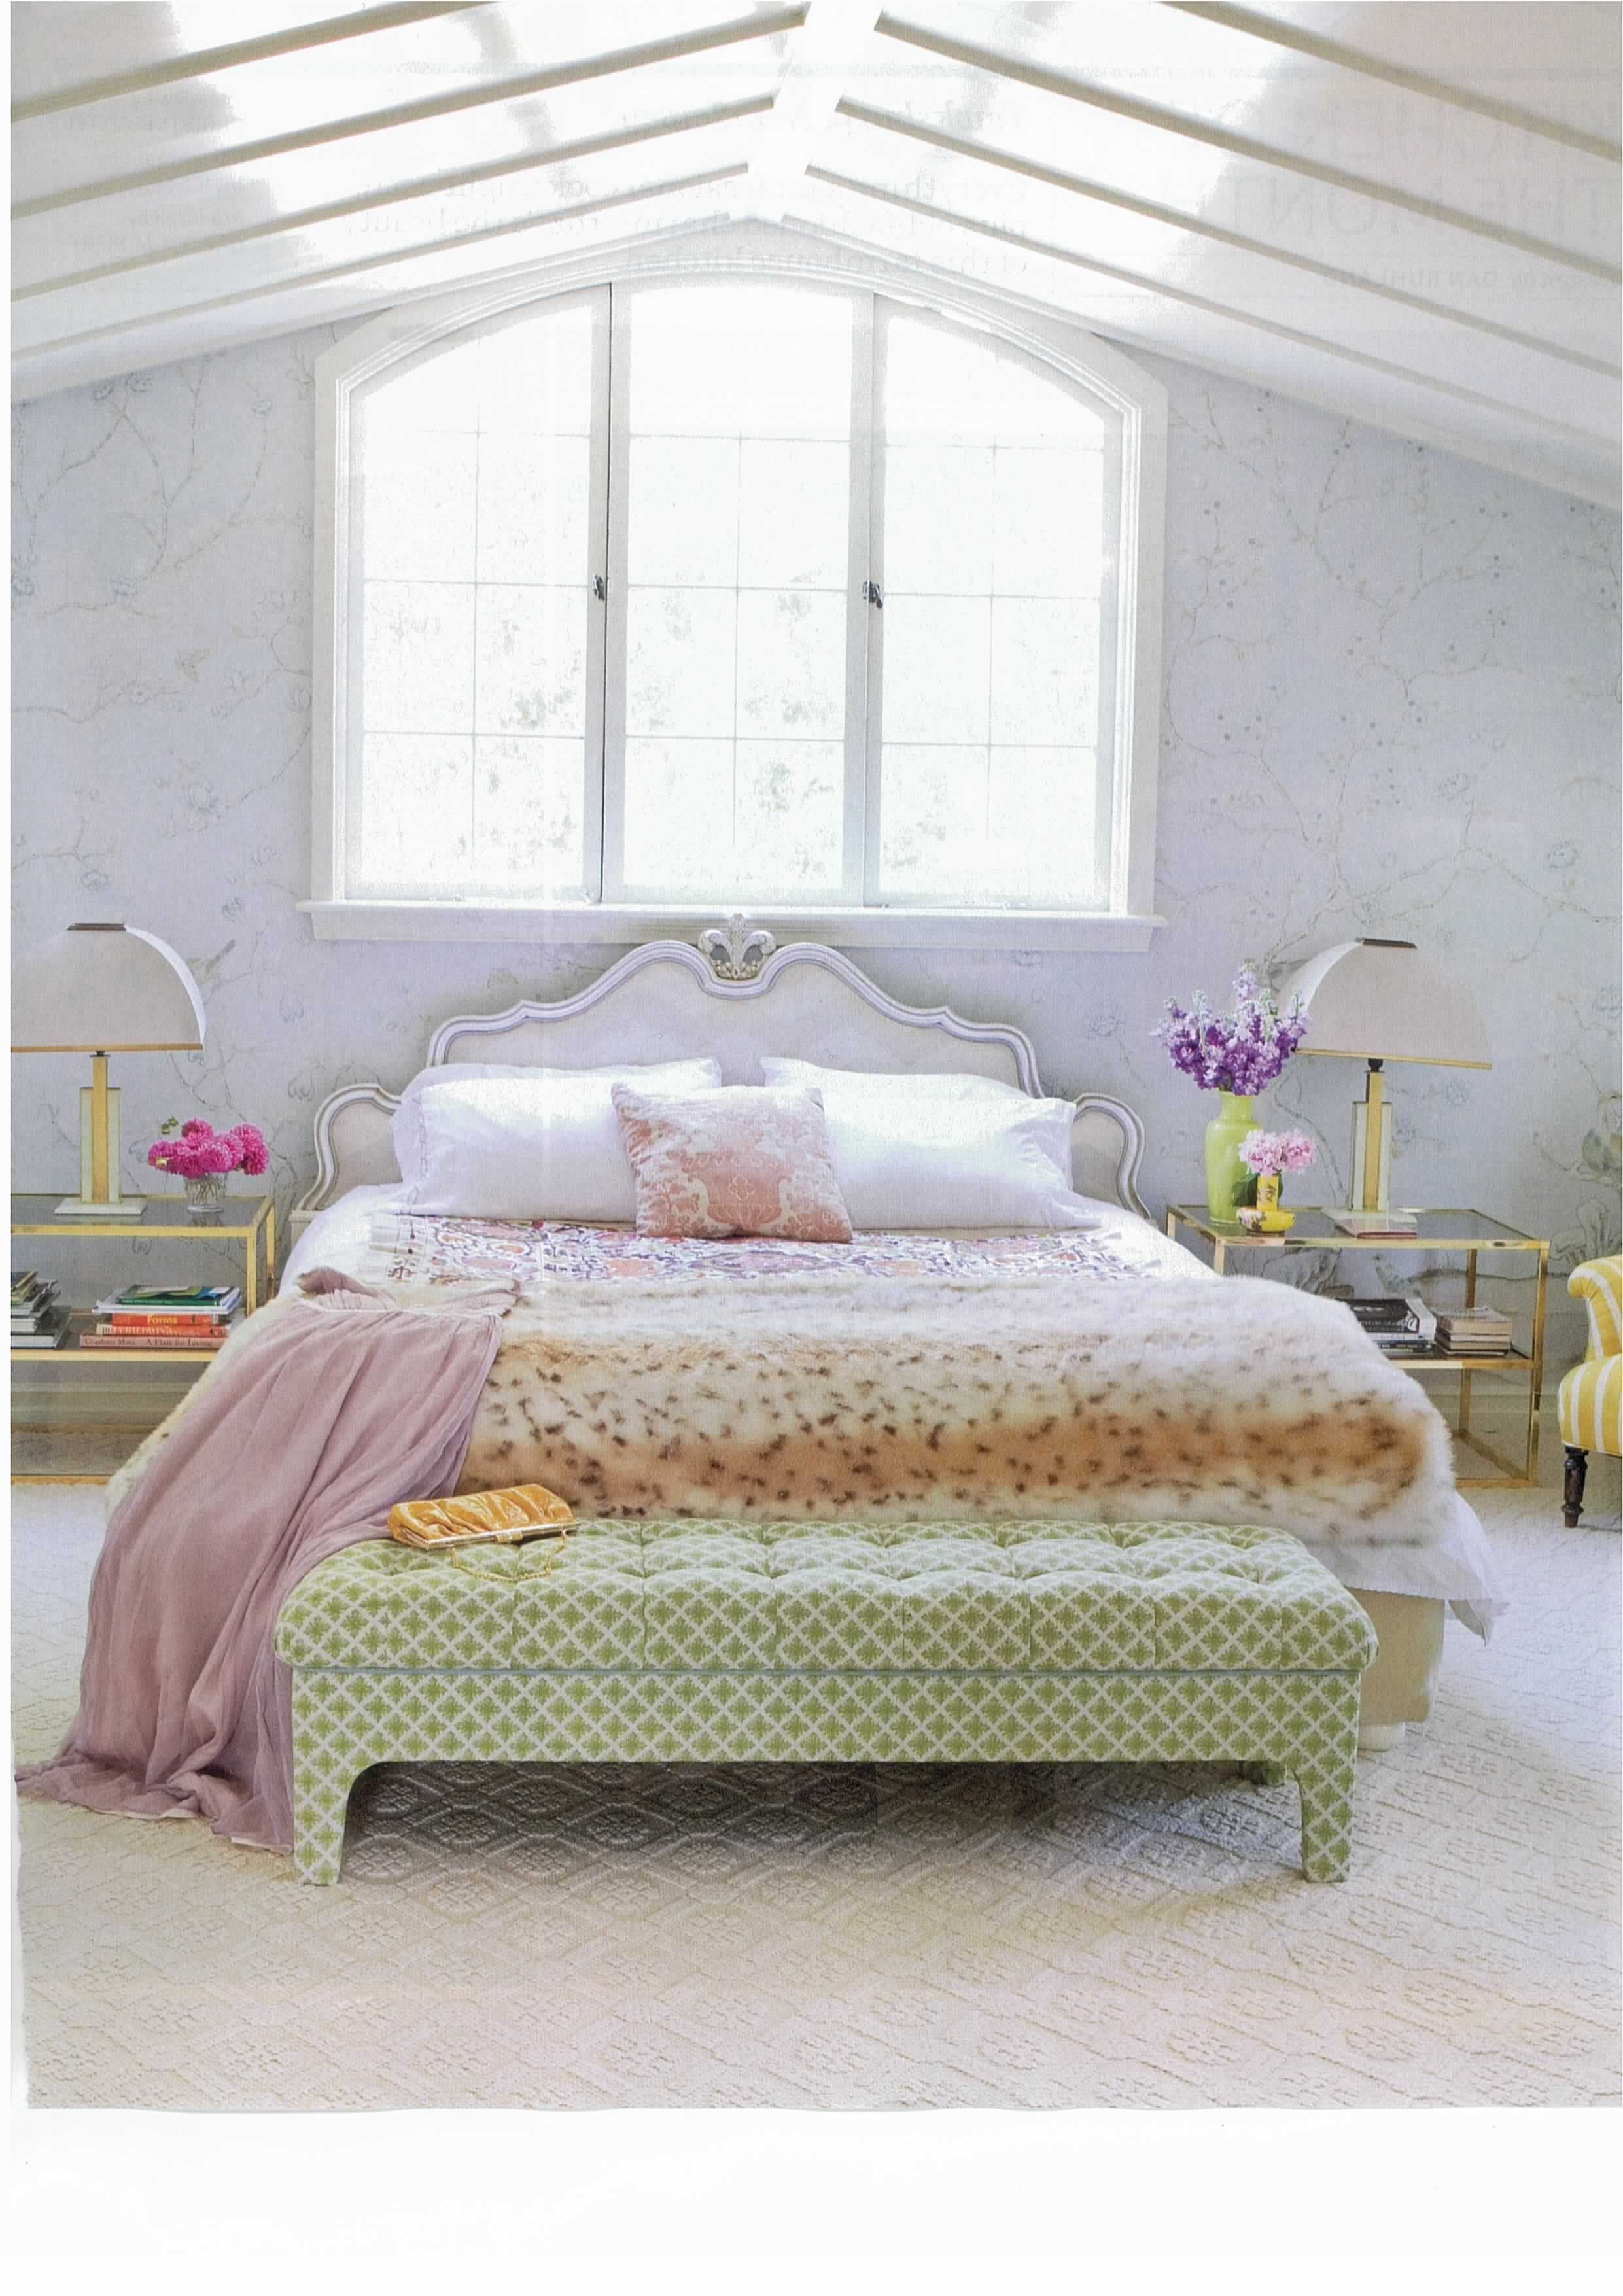 Sweet Dreams: Patternful Bedrooms